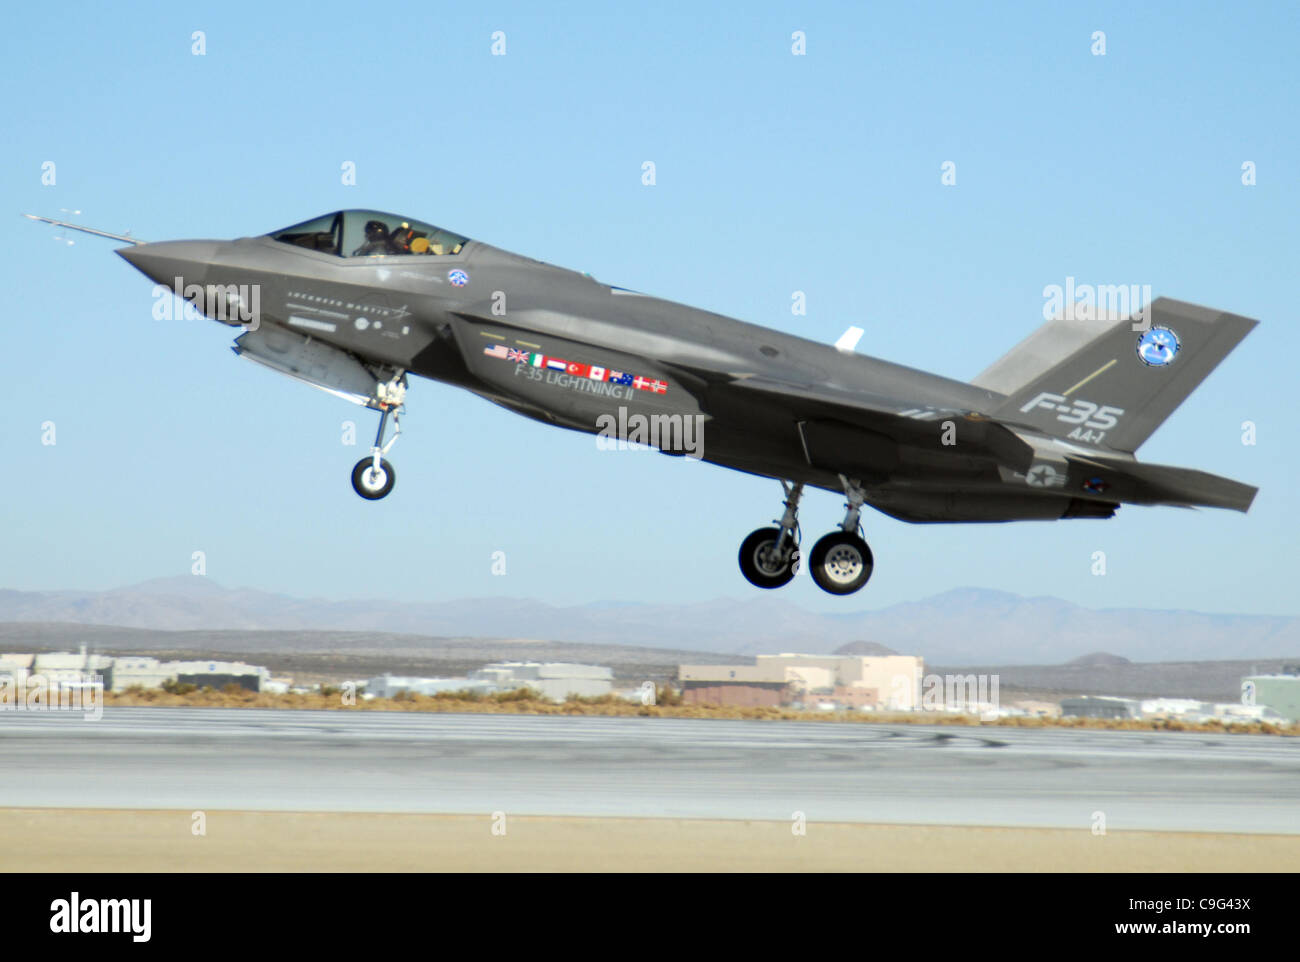 An F-35 Joint Strike Fighter, marked AA-1, lands Oct. 23 at Edwards Air Force Base, Calif. The F-35 Integrated Test - Stock Image